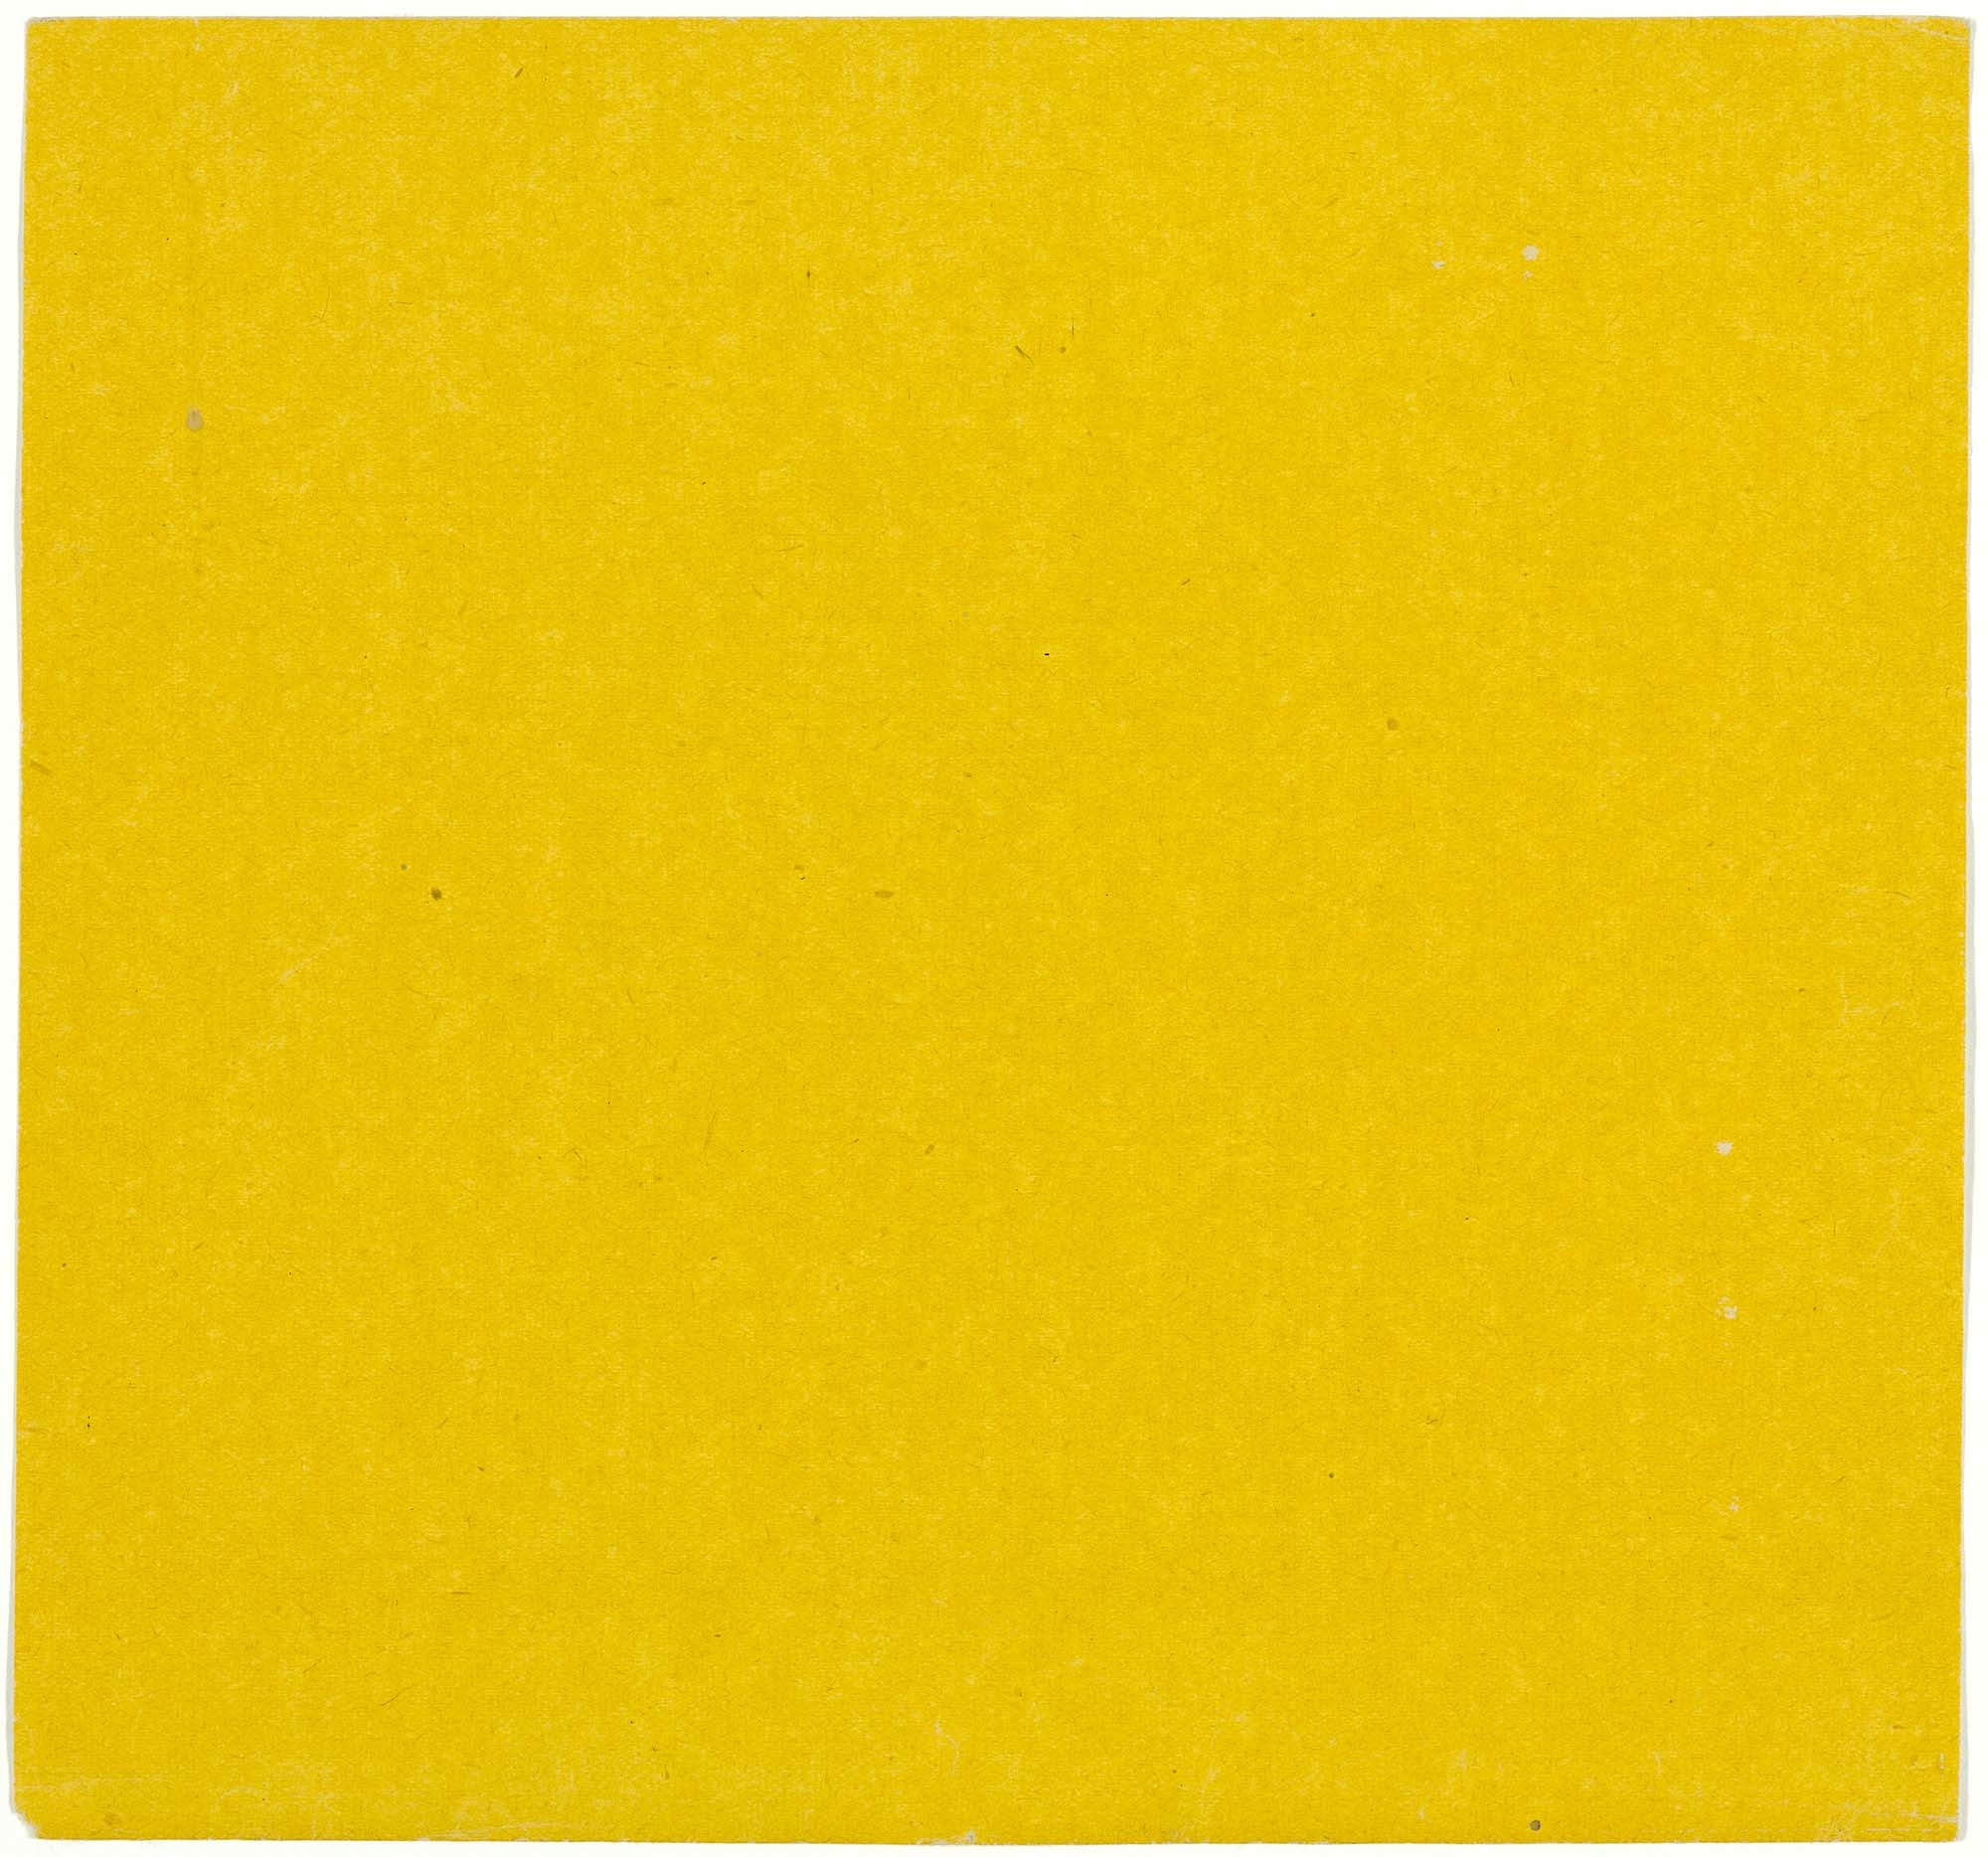 Ellsworth Kelly. Yellow from the series Line Form Color. 1951. Colored Paper. 7 1⁄2 × 8″ (19 × 20.3 cm). Gift of the artist and purchased with funds provided by Jo Carole and Ronald S. Lauder, Sarah-Ann and Werner H. Kramarsky, Mr. and Mrs. James R. Hedges, IV, Kathy and Richard S. Fuld, Jr. and Committee on Drawings Funds. © 2008 Ellsworth Kelly